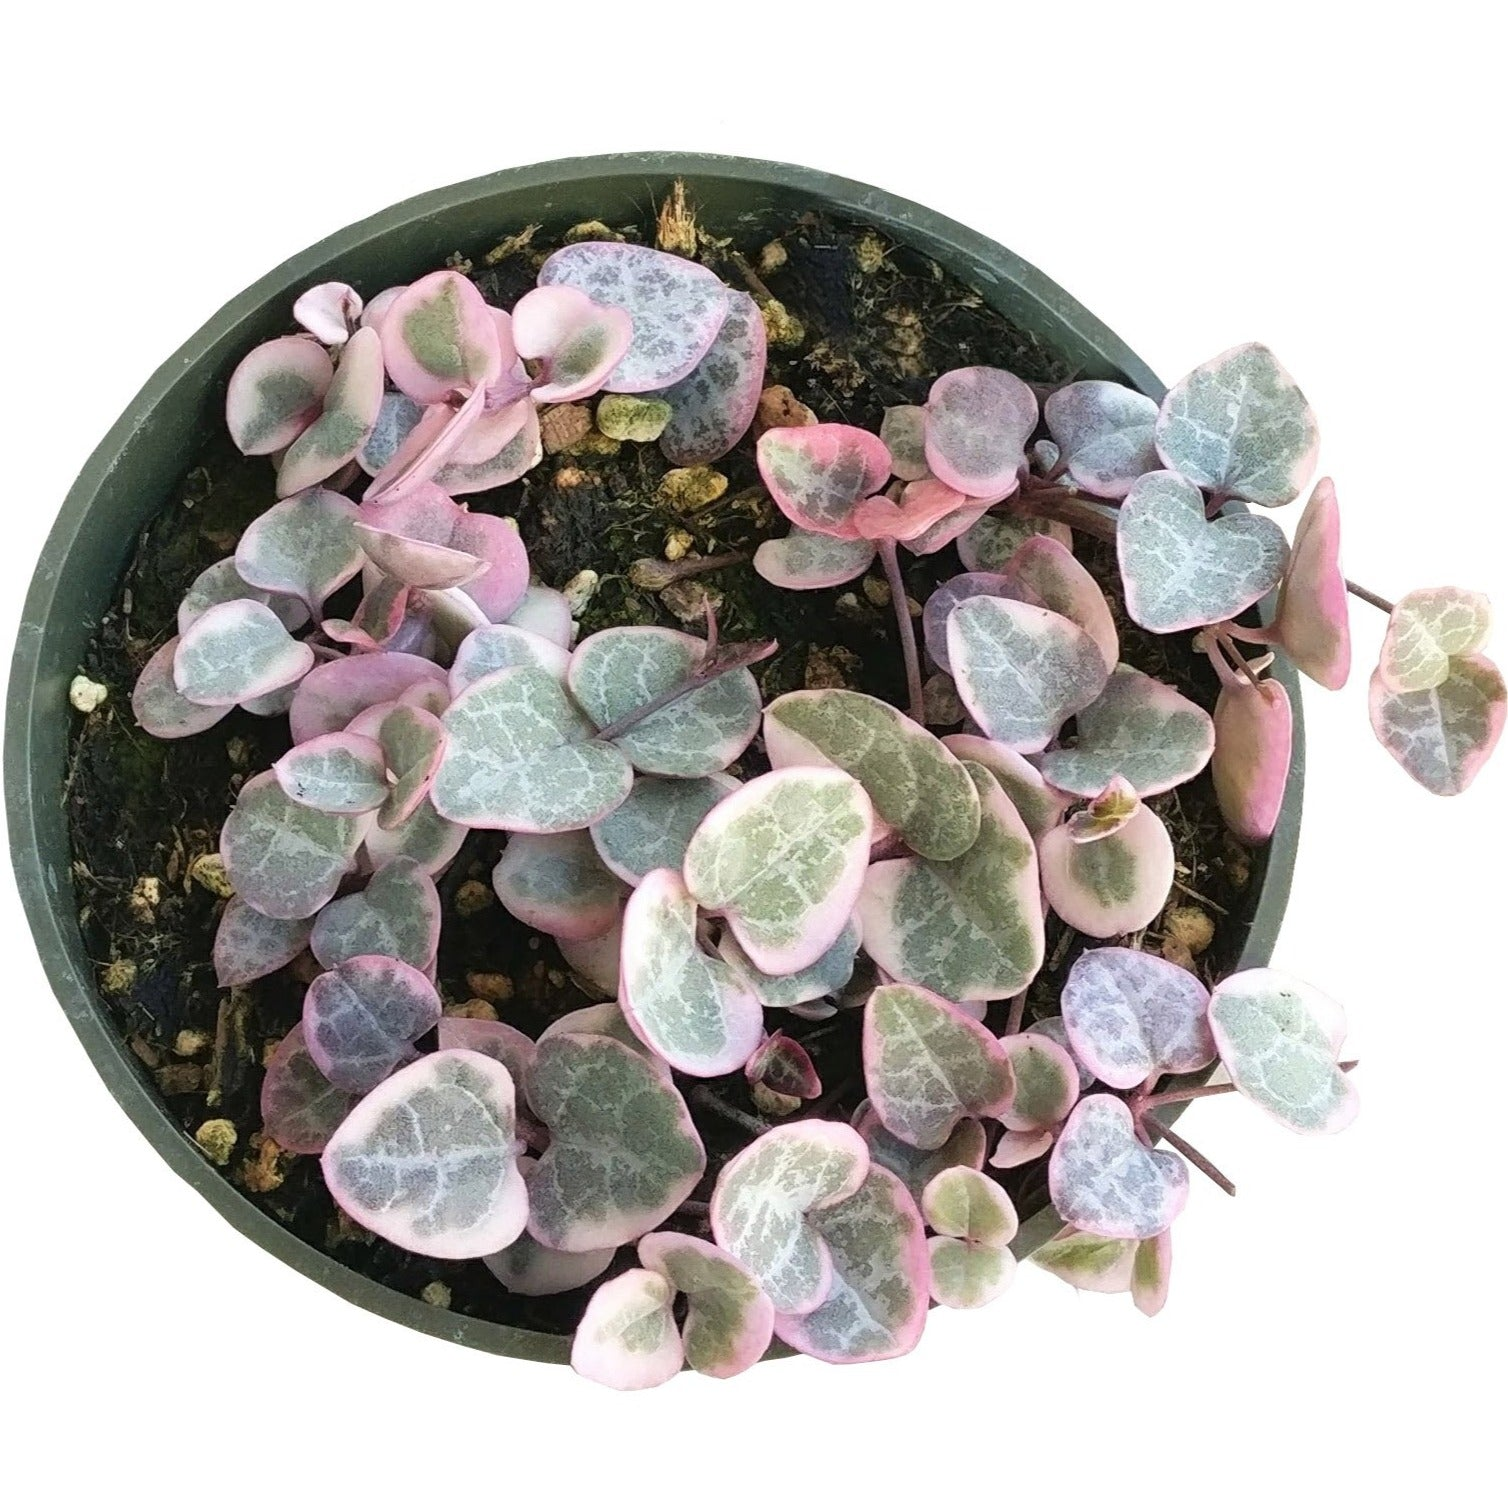 Tips for growing Variegated String of Hearts indoor home garden, Succulents, succulent plant, succulent subscription, succulents store in CA, Rare succulents, succulents shop in California, succulent care tips, cactus, Variegated String of Hearts in California, How to grow Variegated String of Hearts